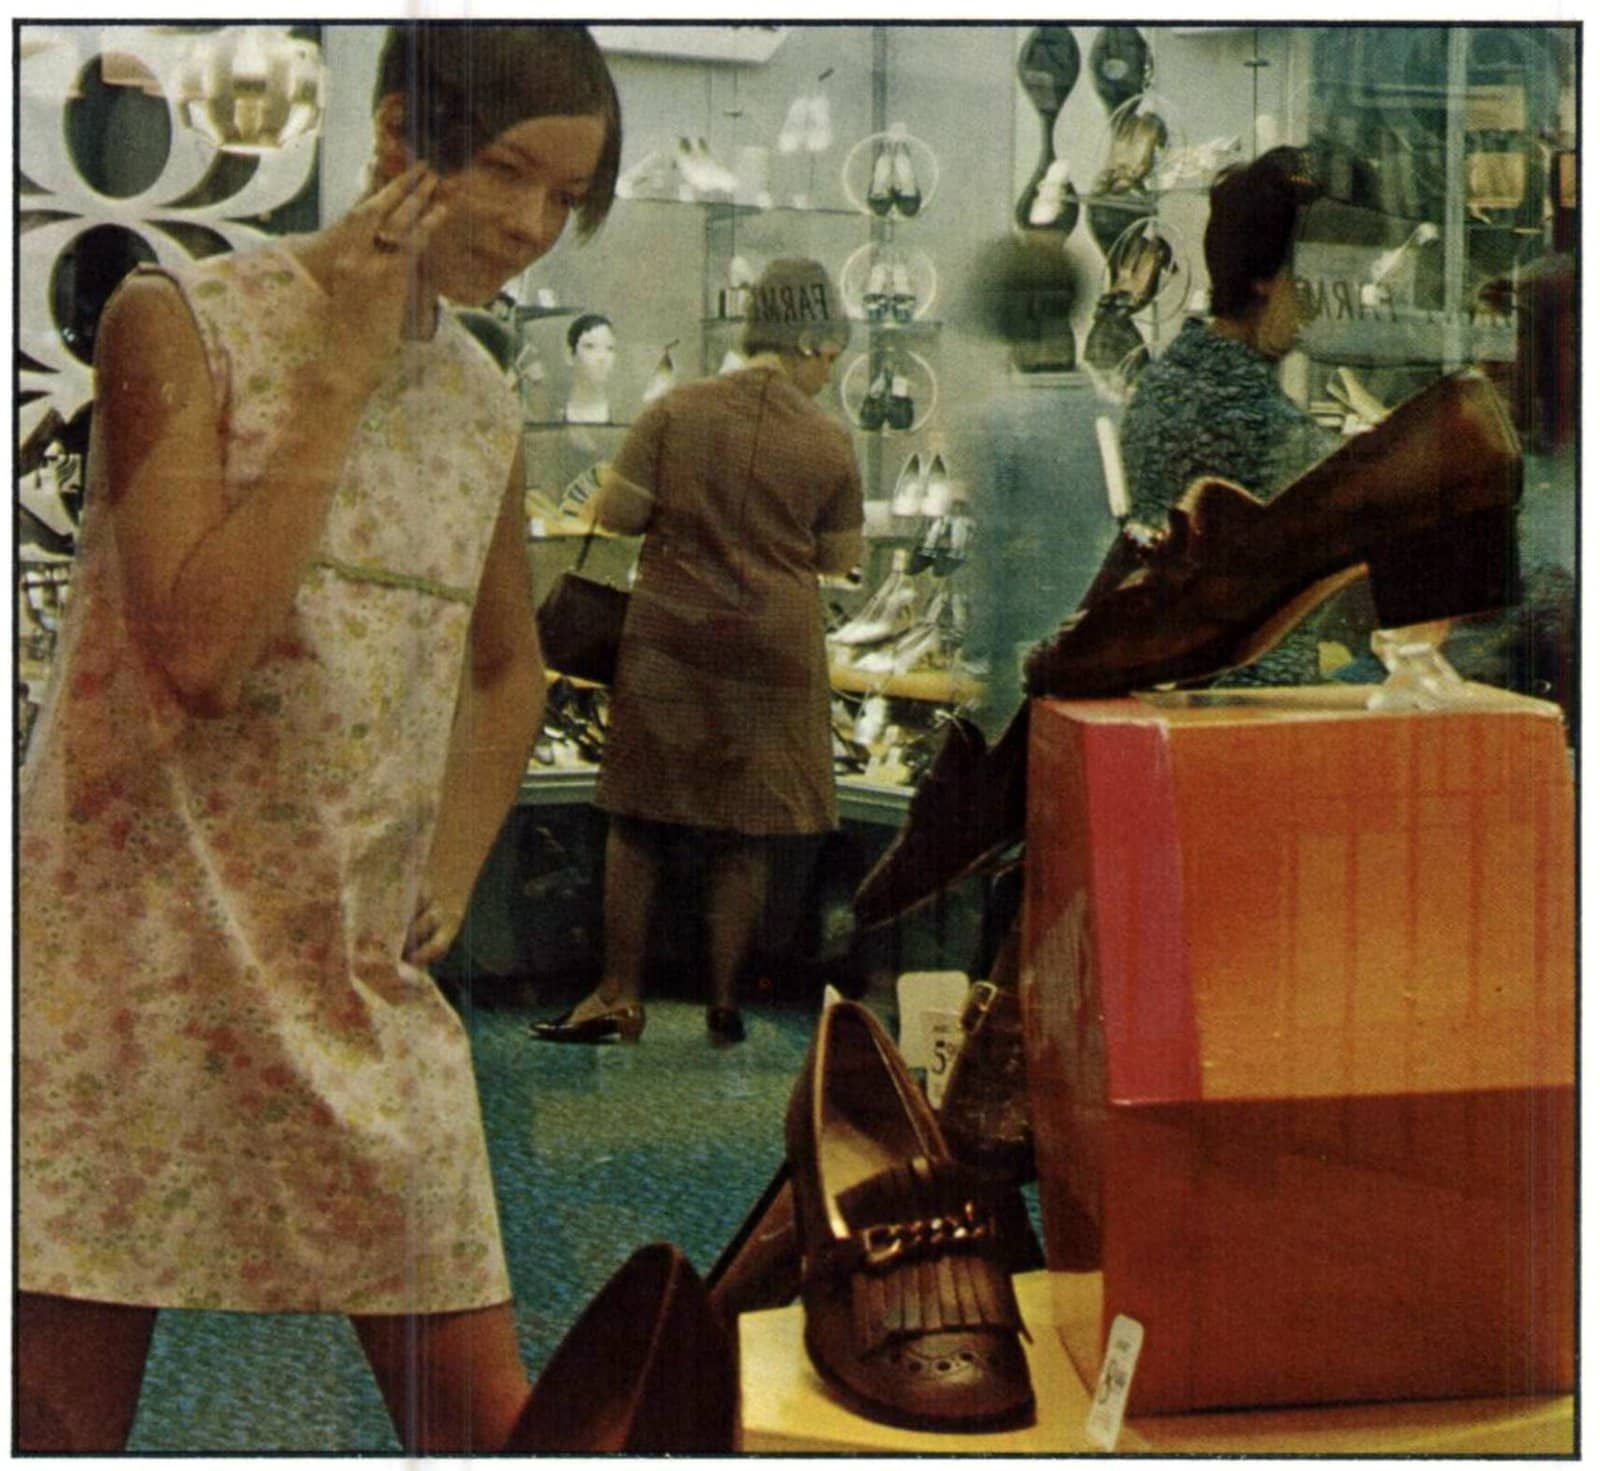 Mod sixties woman looking at a shoe store display in 1968